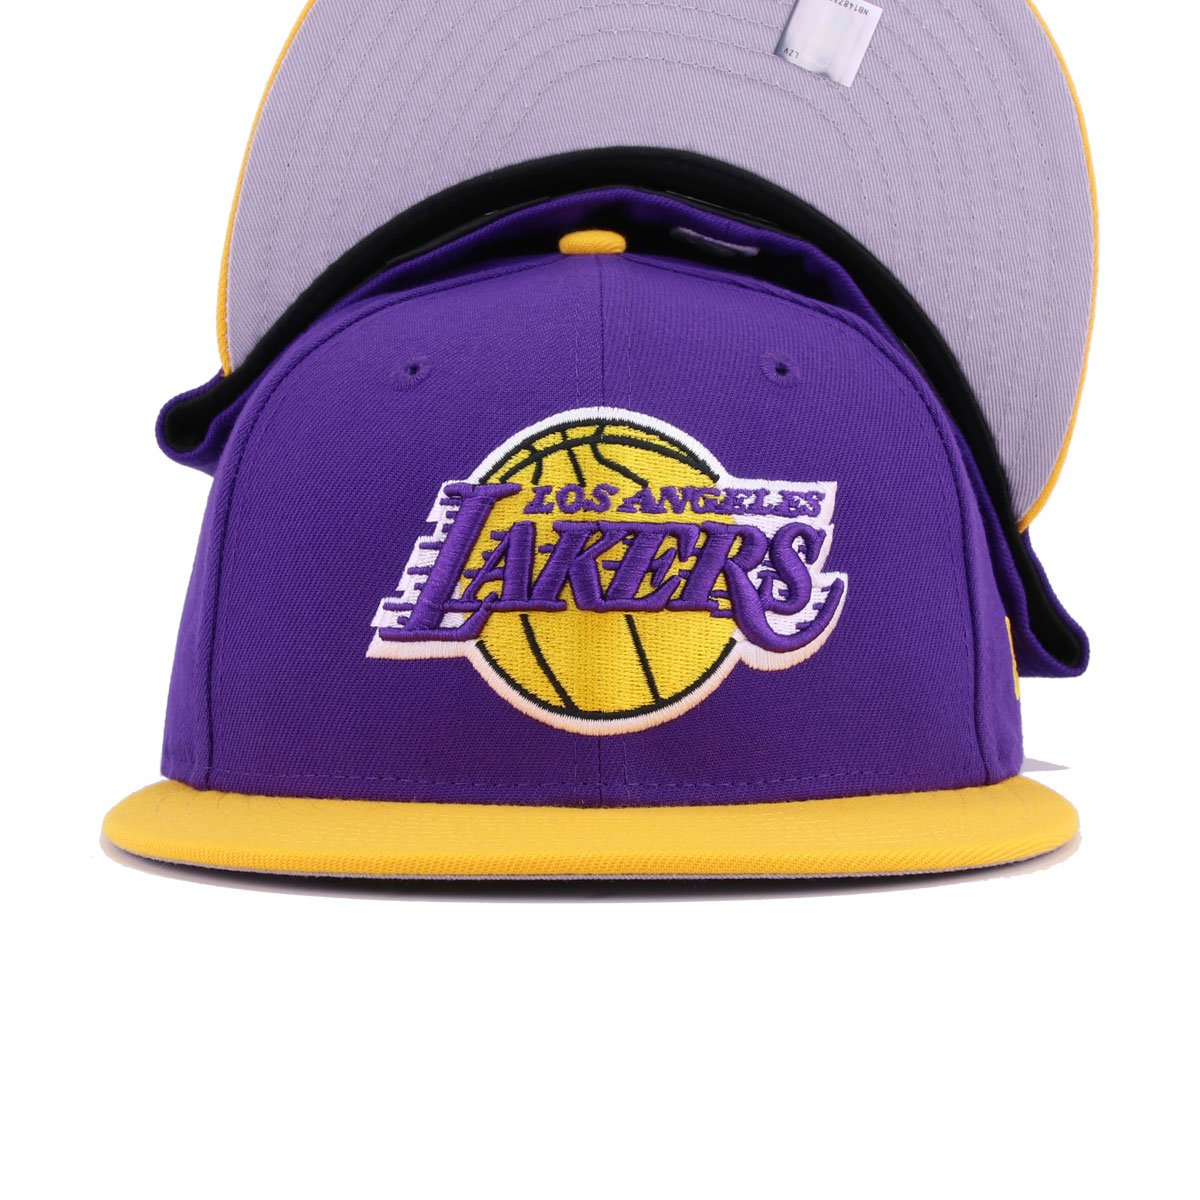 Los Angeles Lakers Deep Purple A's Gold New Era 59Fifty Fitted